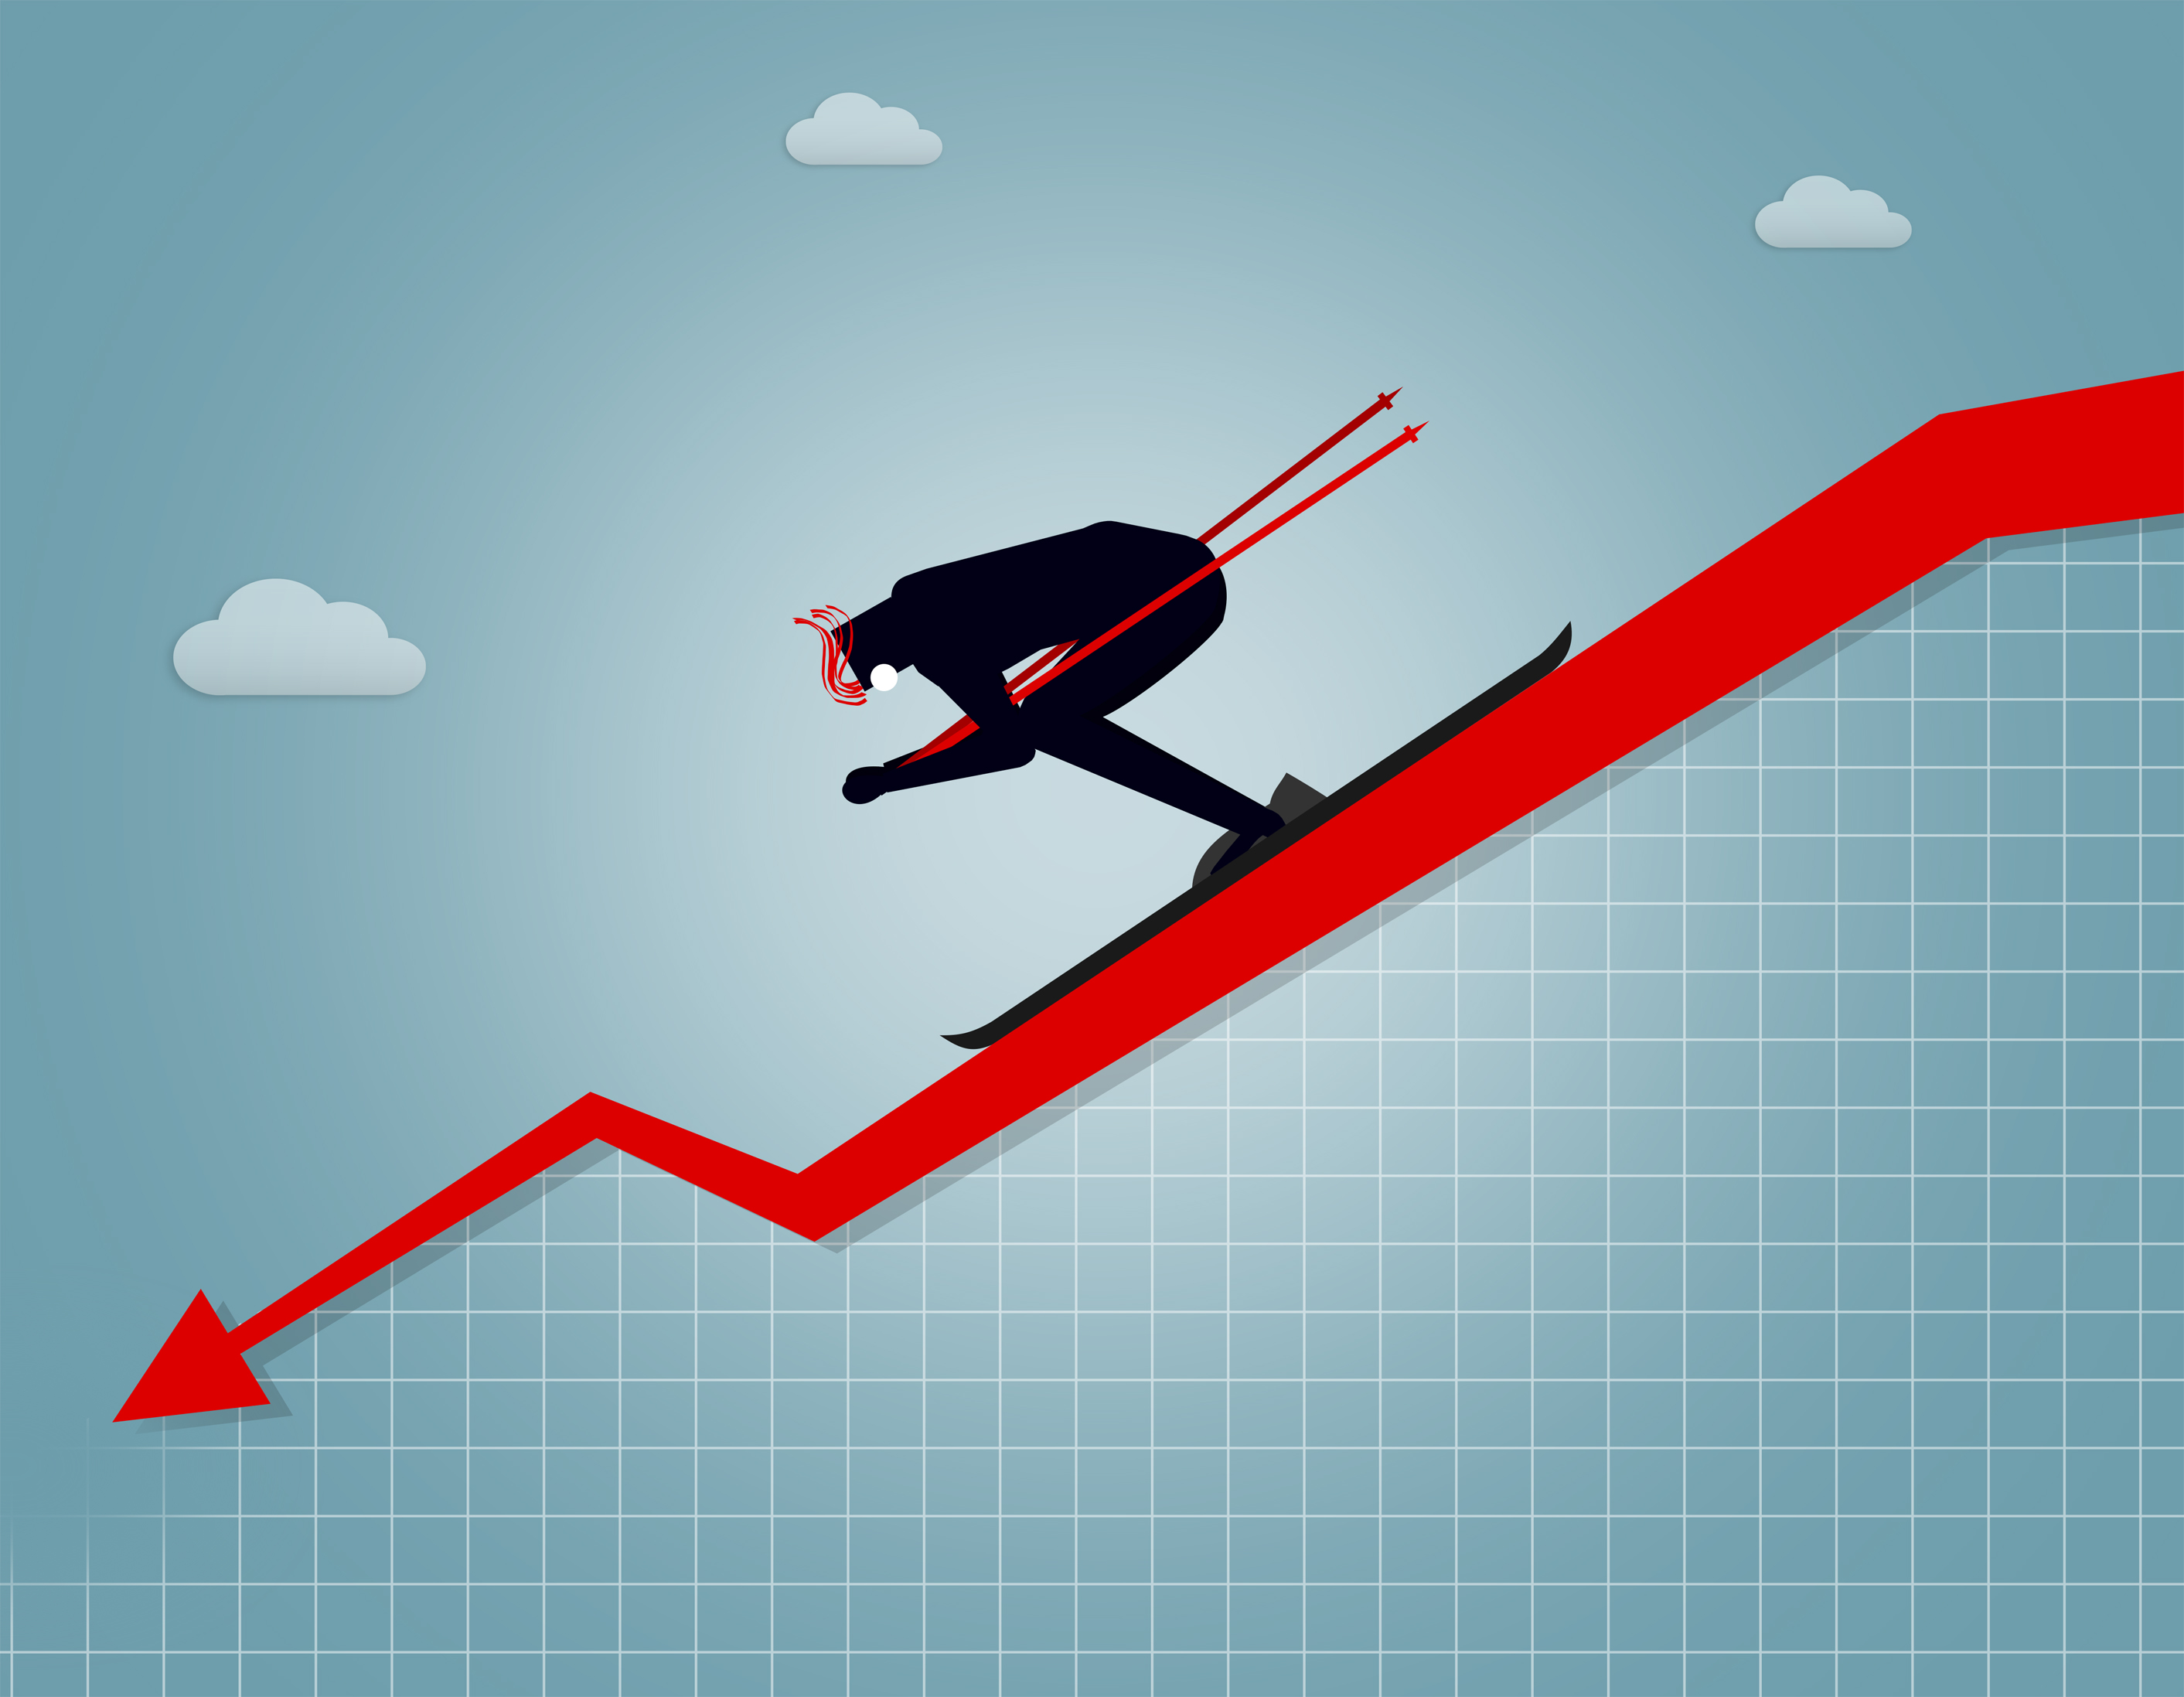 Businessman going downhill - market crash and correction concept photo